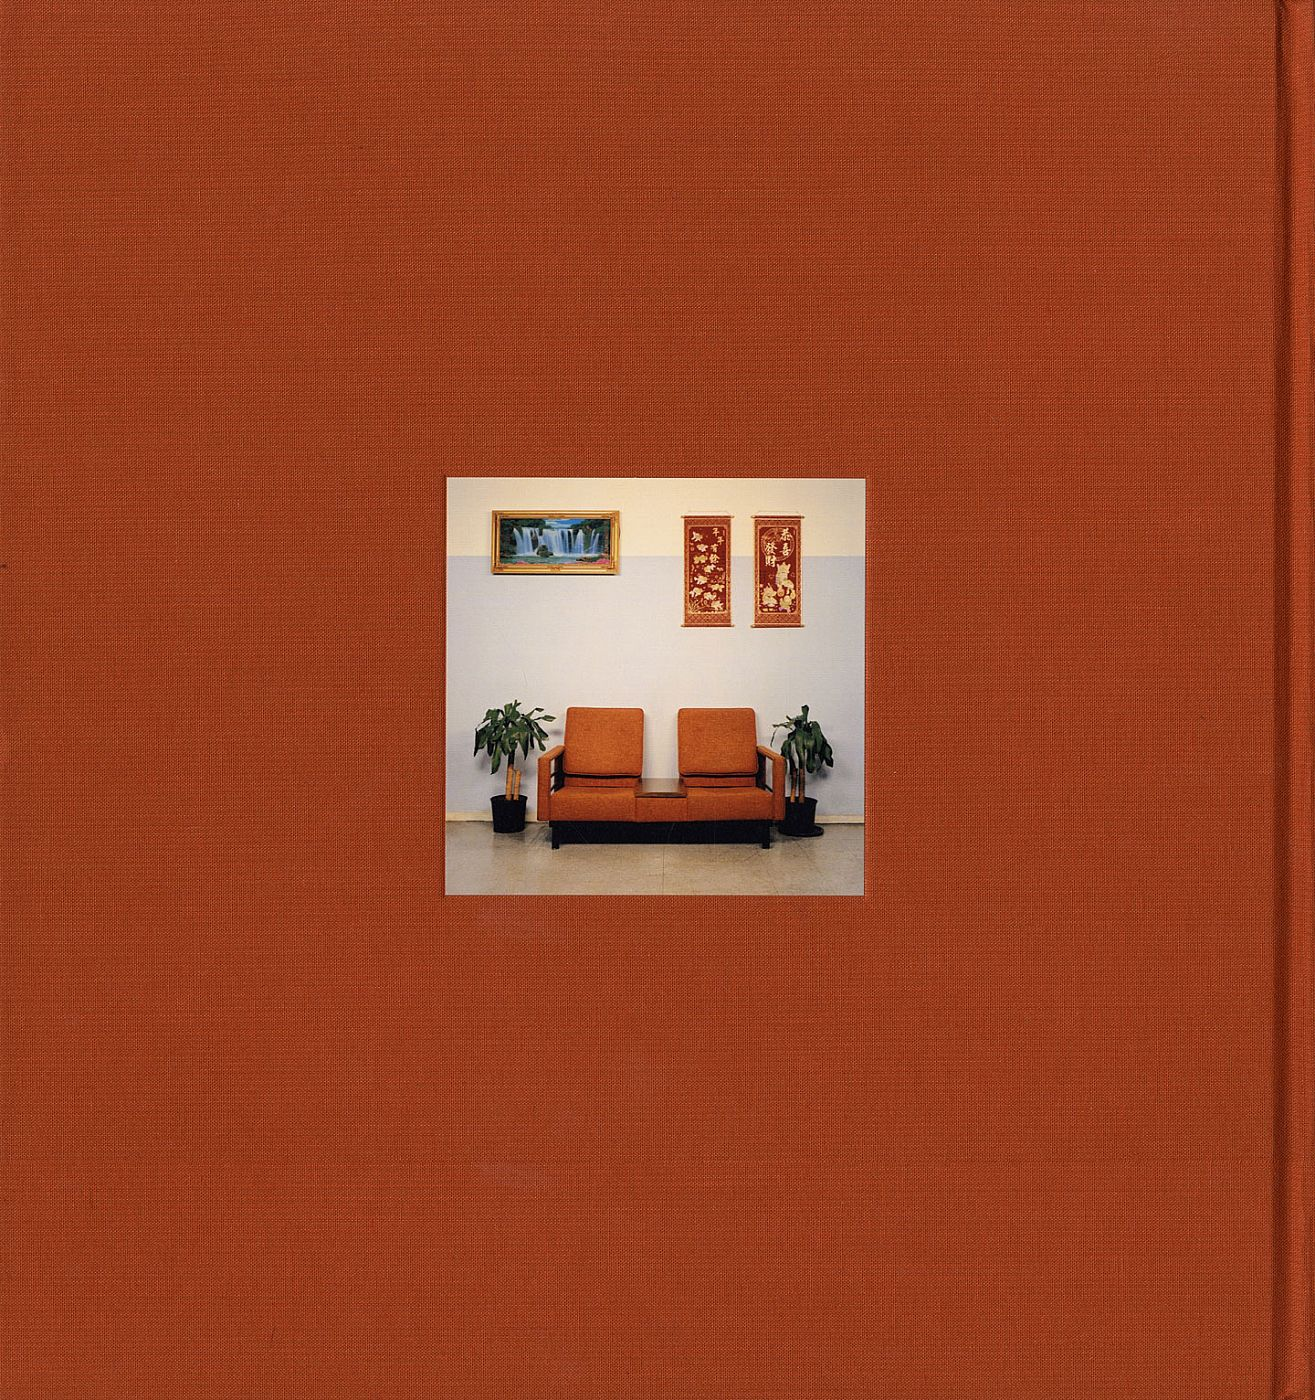 Aaron Ruell: Some Photos [SIGNED]